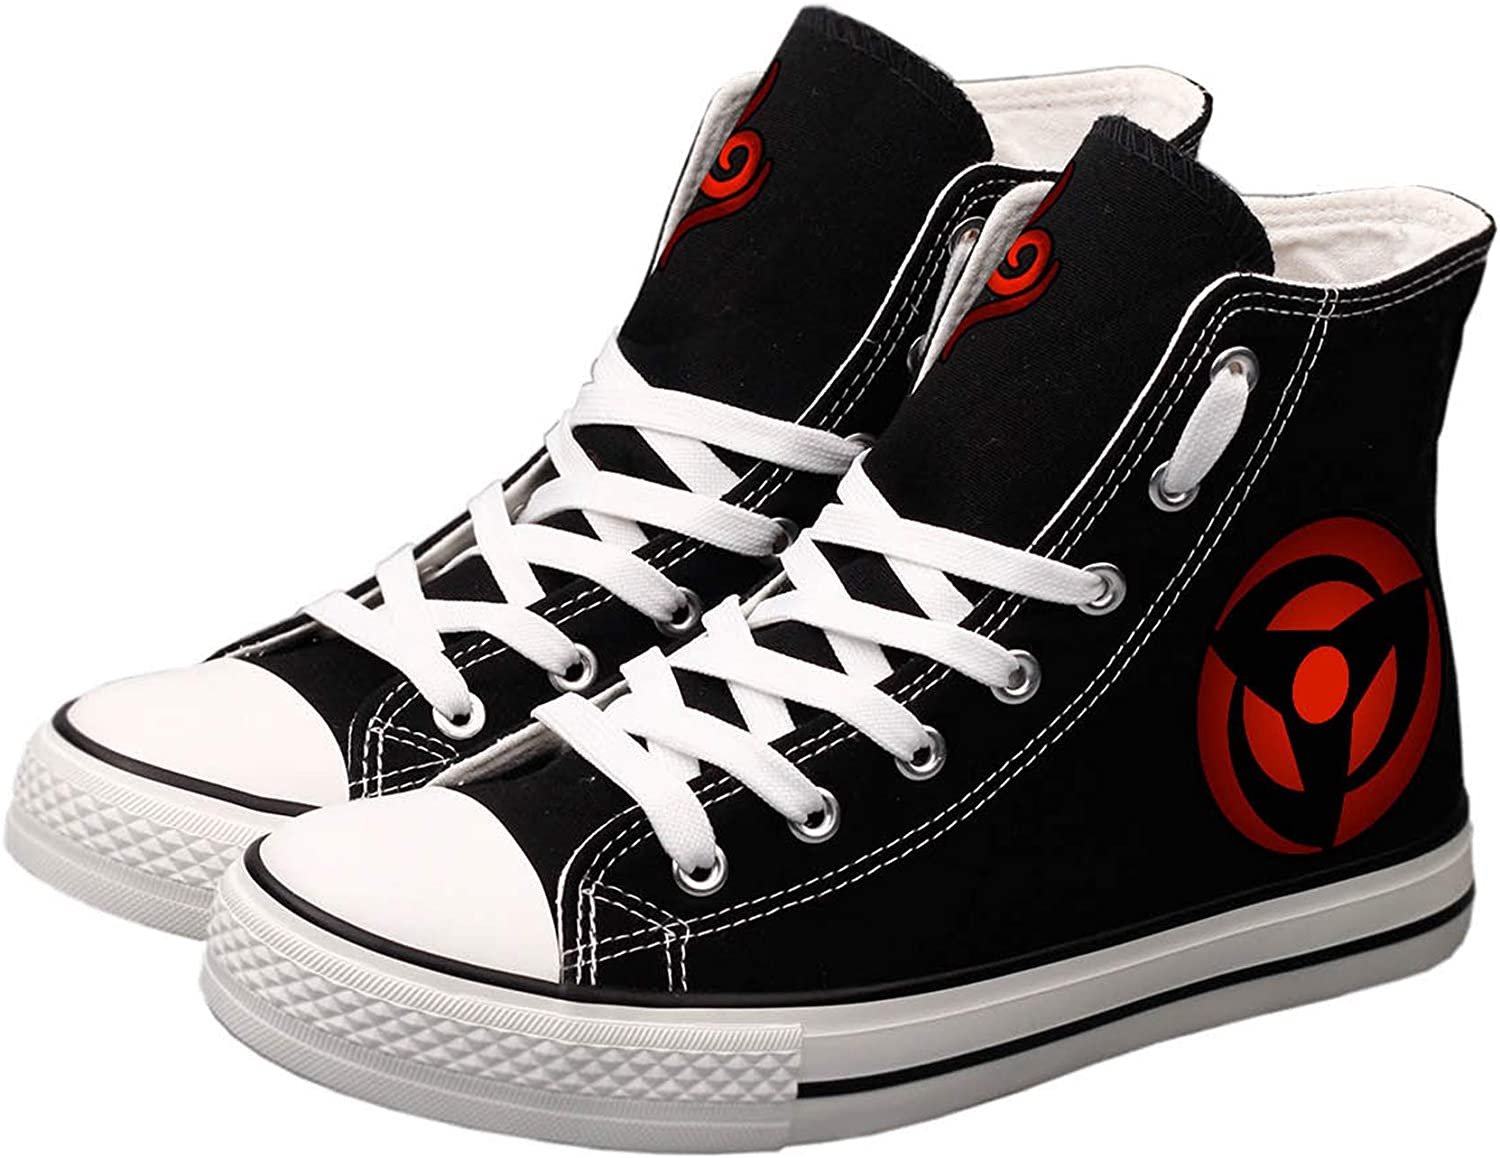 Antetok Naruto Canvas shoes Hand-Painted Canvas shoes Casual Cosplay High Top Sneakers Unisex Designs Black